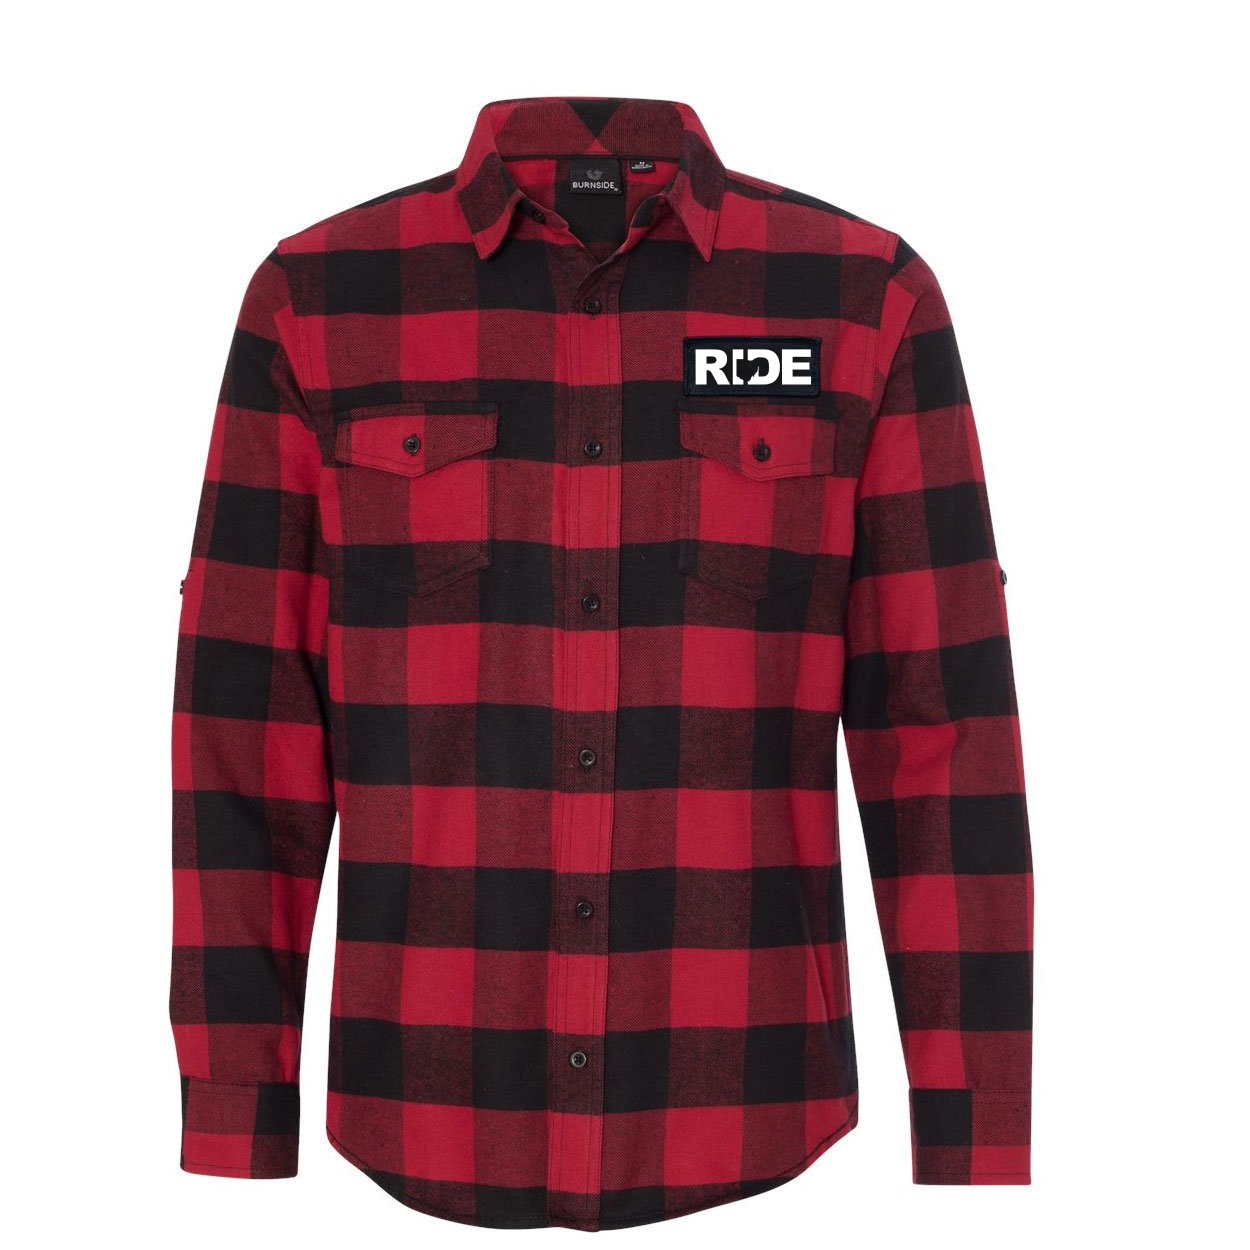 Ride Ohio Classic Unisex Long Sleeve Woven Patch Flannel Shirt Red/Black Buffalo (White Logo)